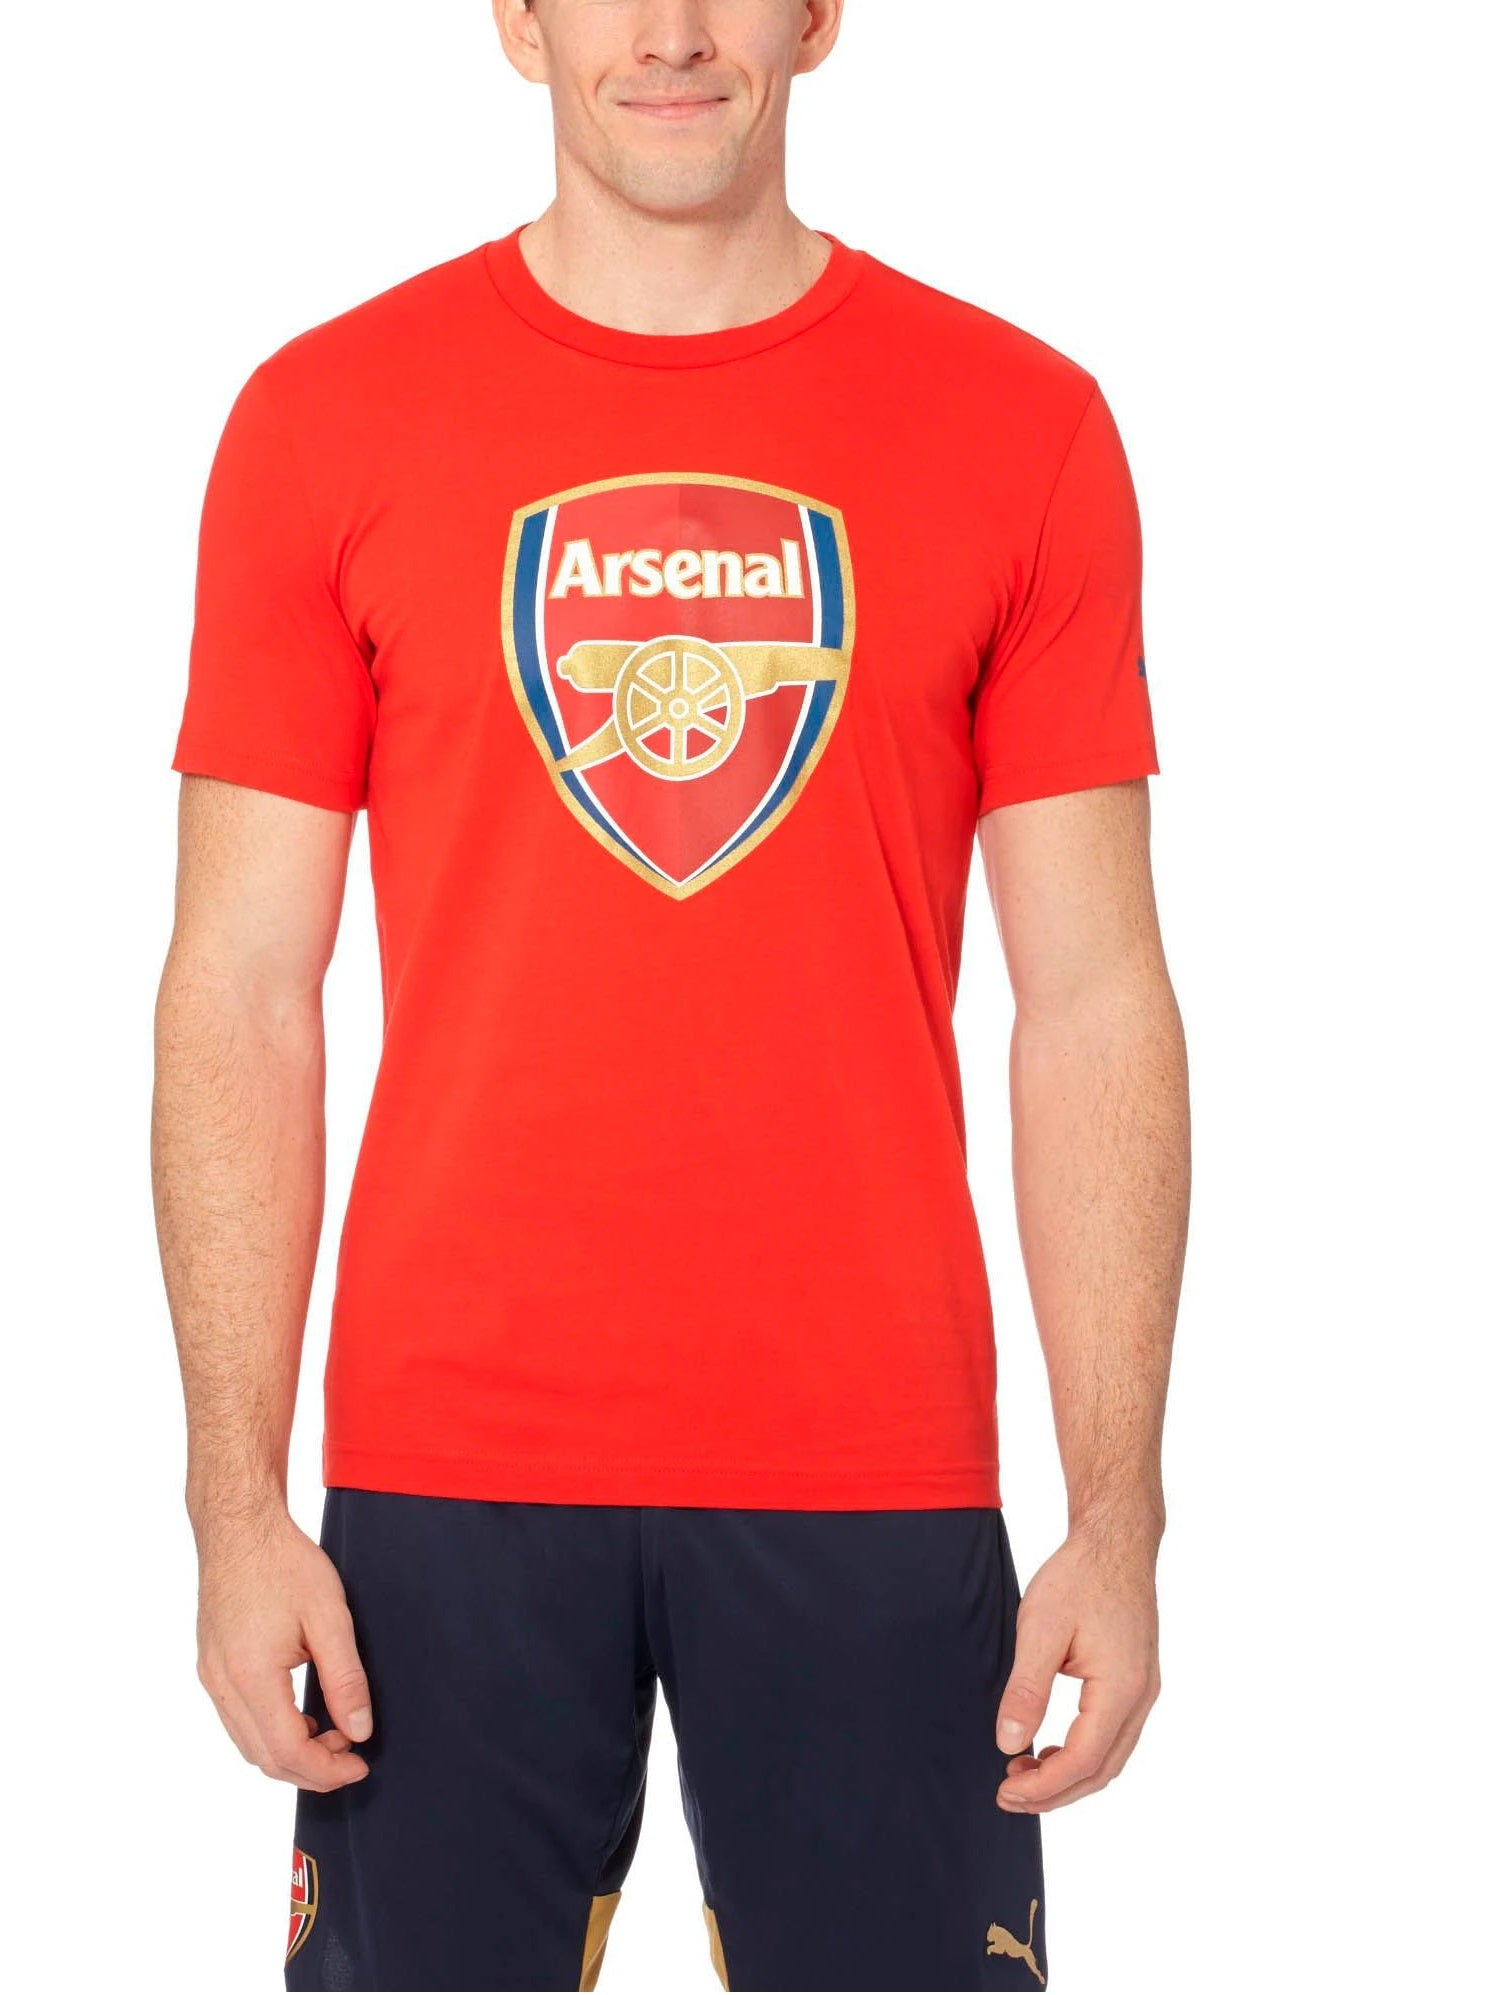 Arsenal Crest Fan T-Shirt 749297-01